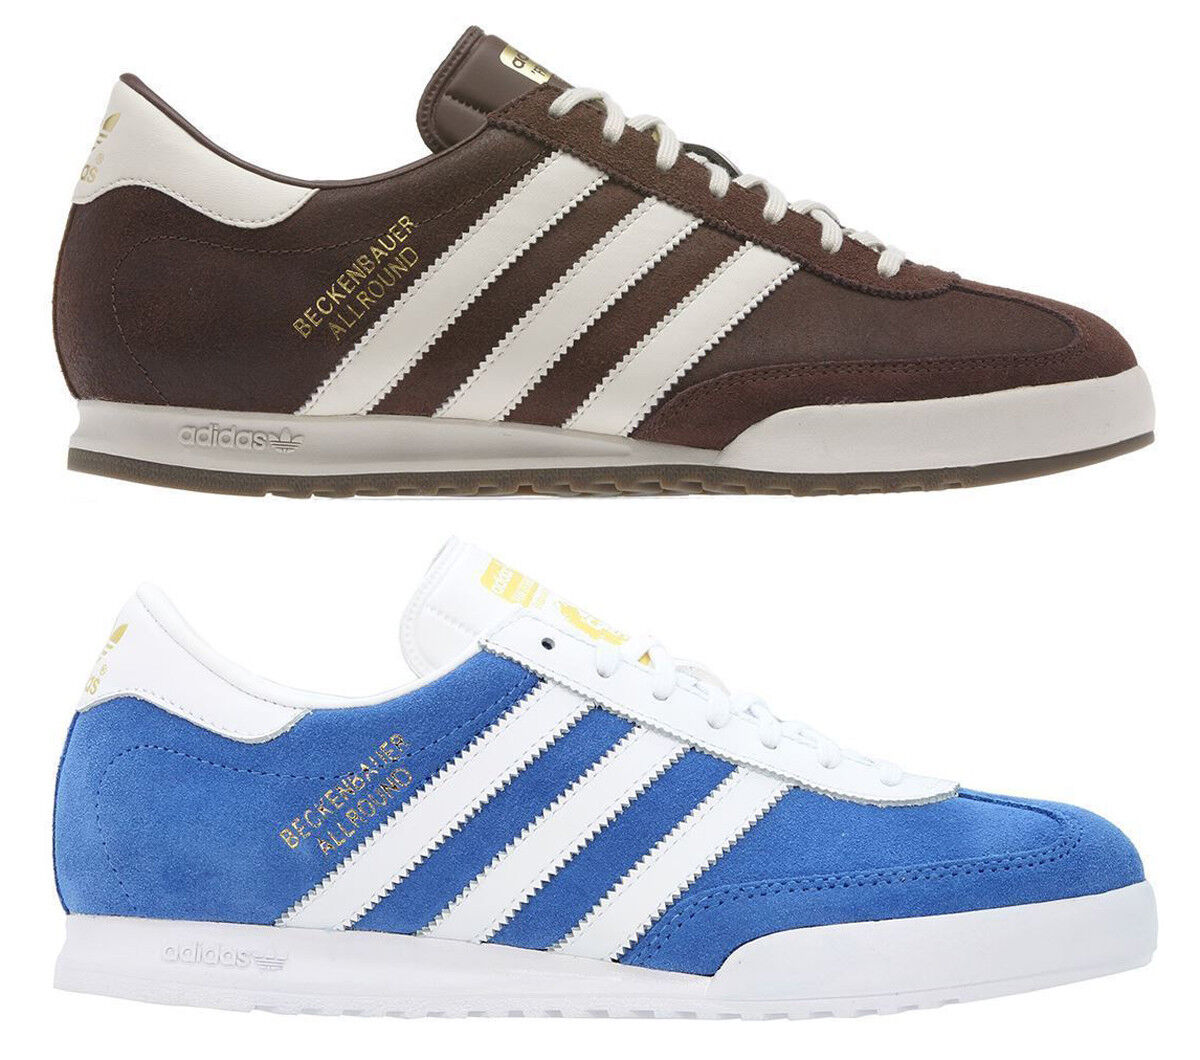 30d29be01766f Adidas Original Mens Mens Mens Beckenbauer Lace Up Trainers Suede Brown  bluee 7c2096